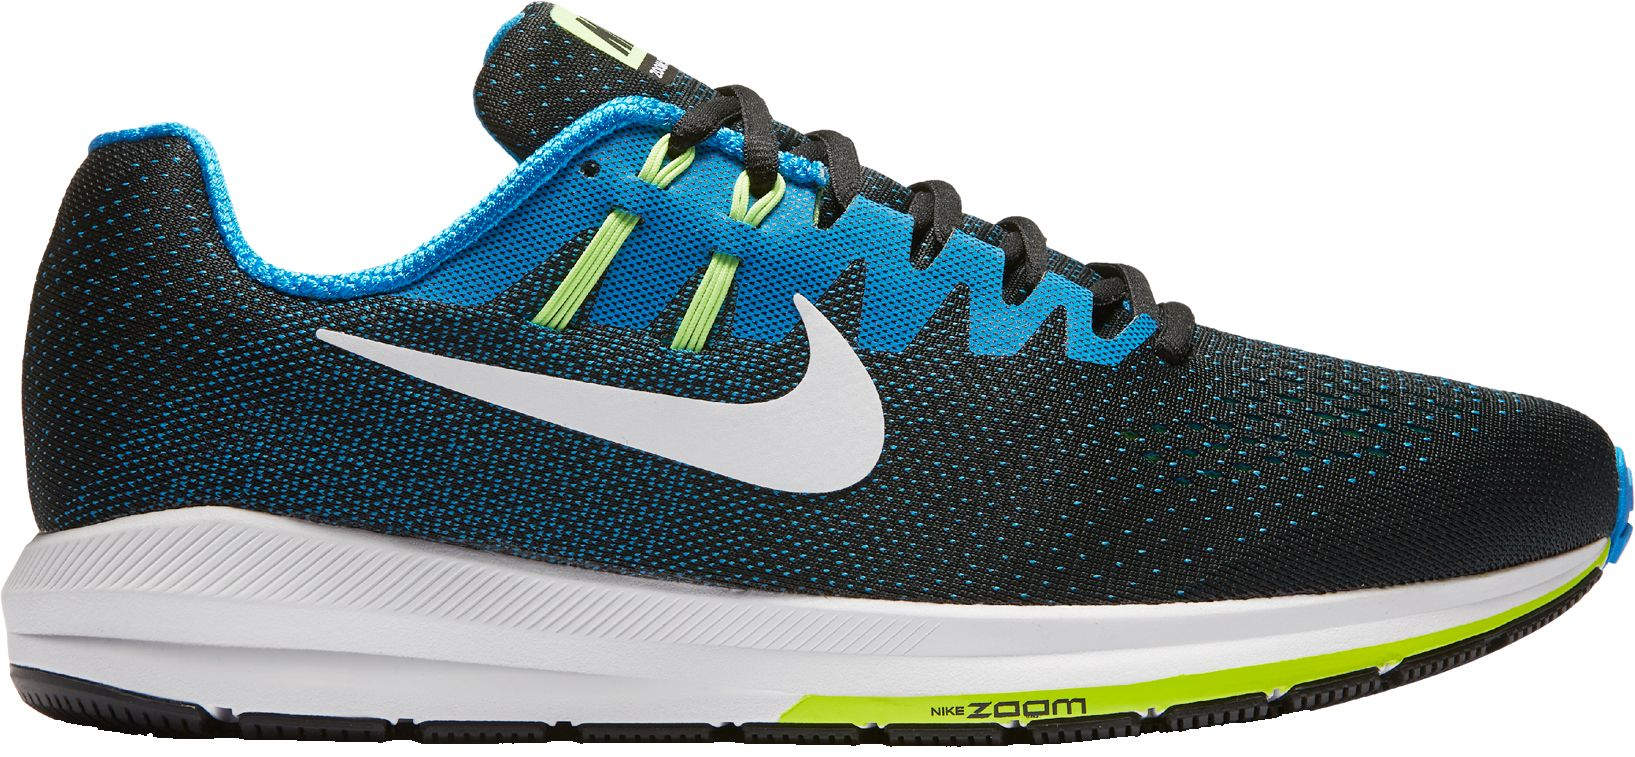 NIKE AIR ZOOM STRUCTURE 20 BLACKWHITEBLUE Colore:BLACK